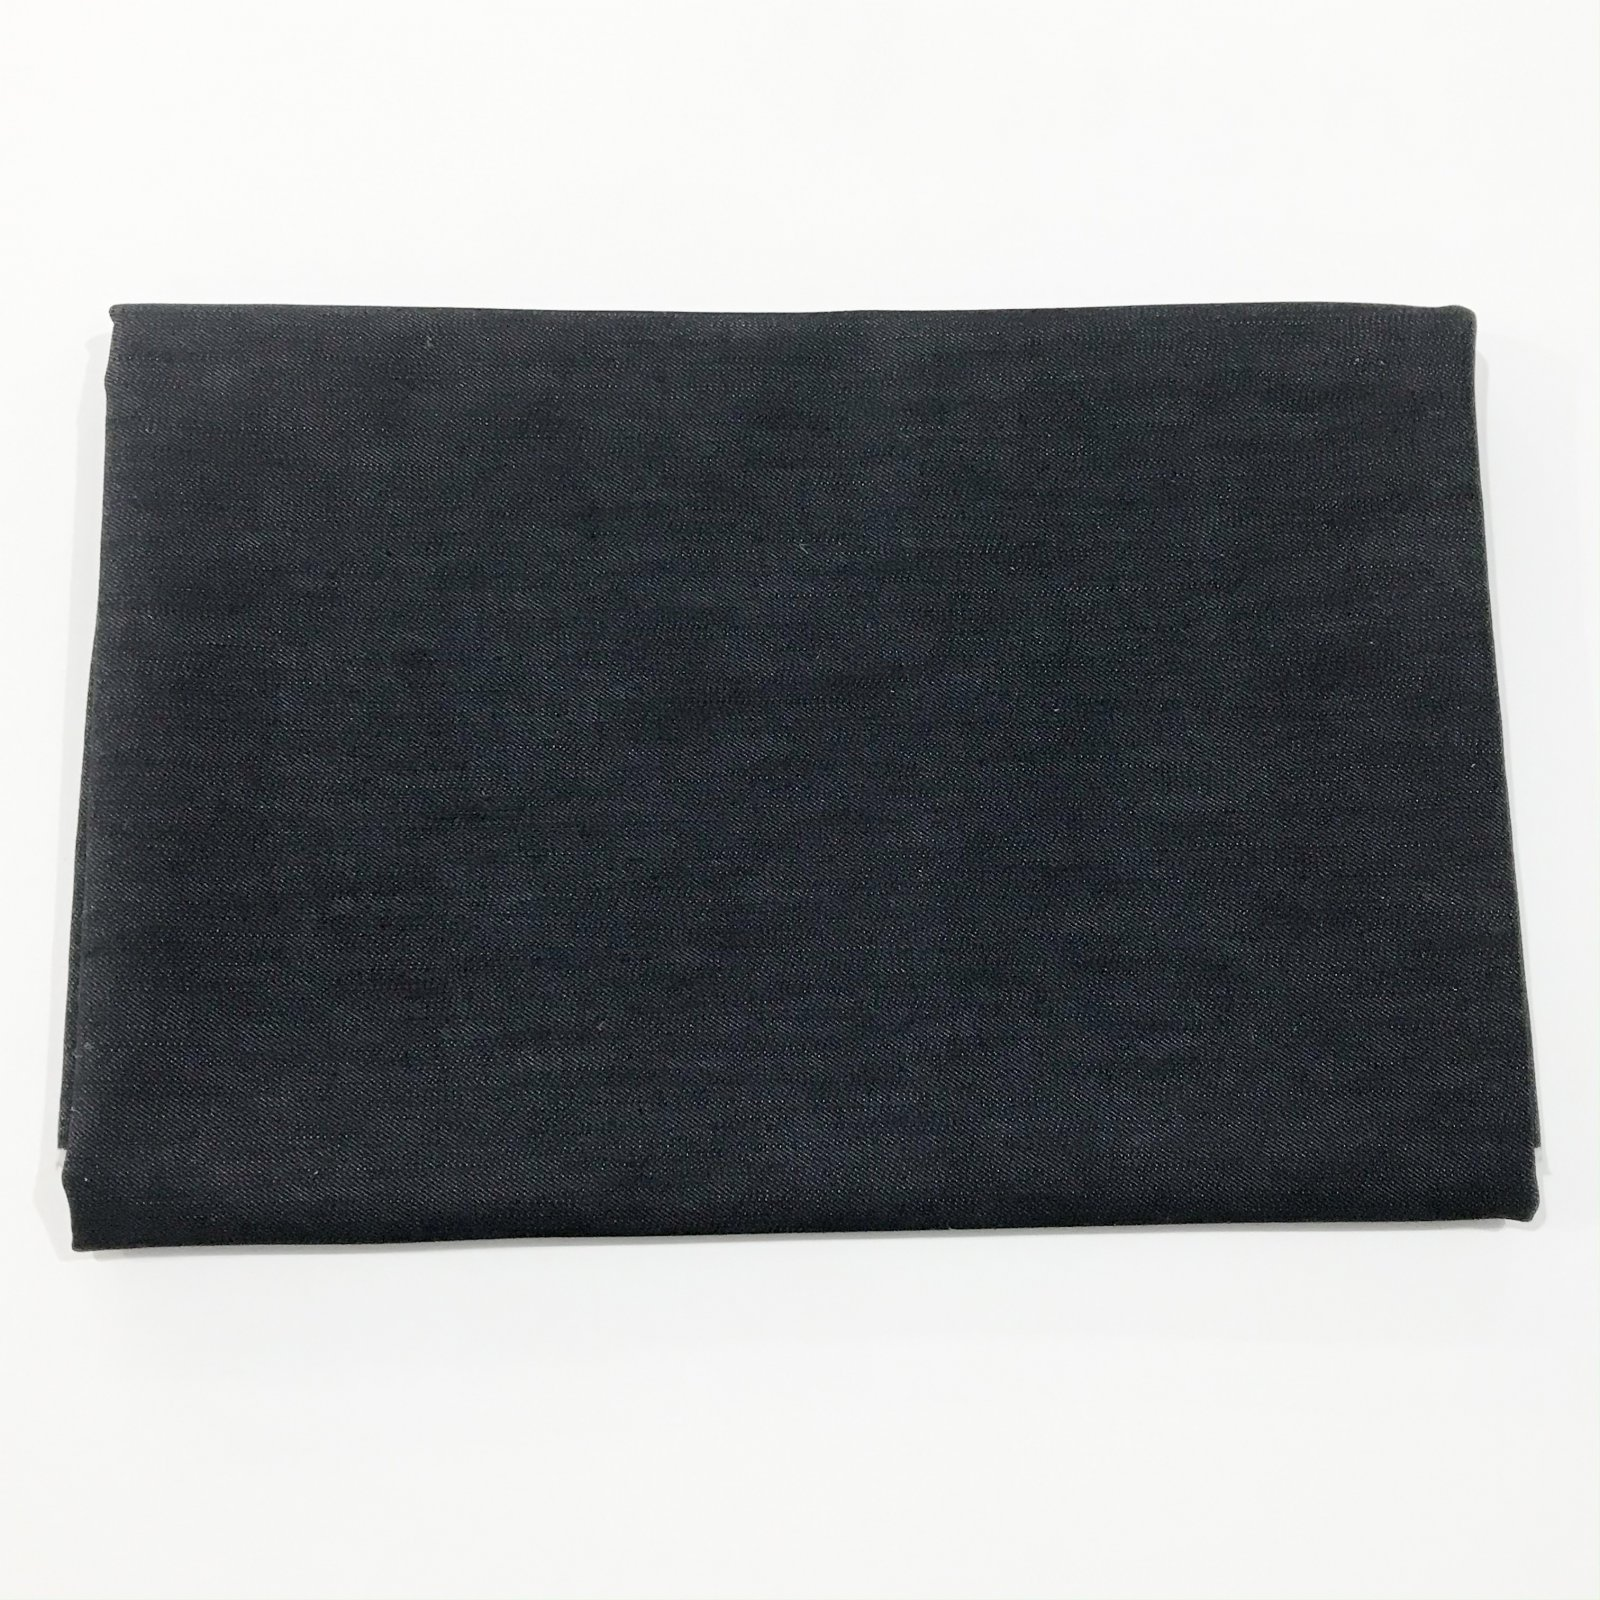 Denim - Dark Indigo - 1 yard + 9 inches (tape on end)